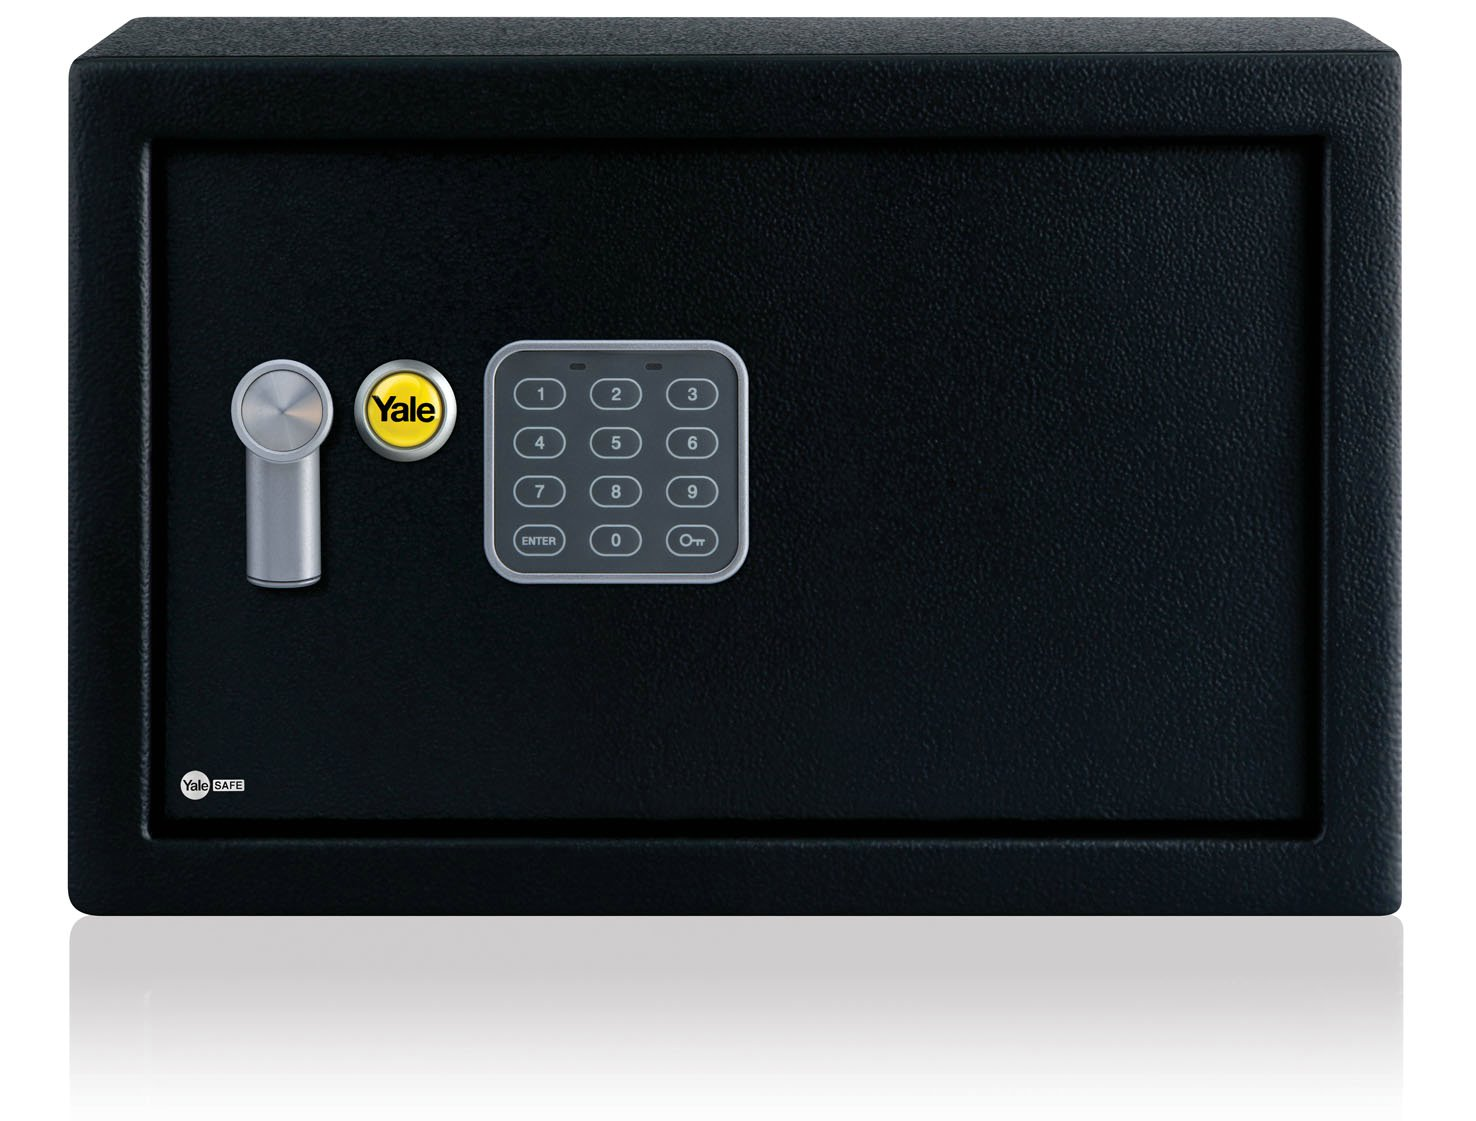 Ysv 250 Db1 Value Home Safe Value Safes Smart Locks